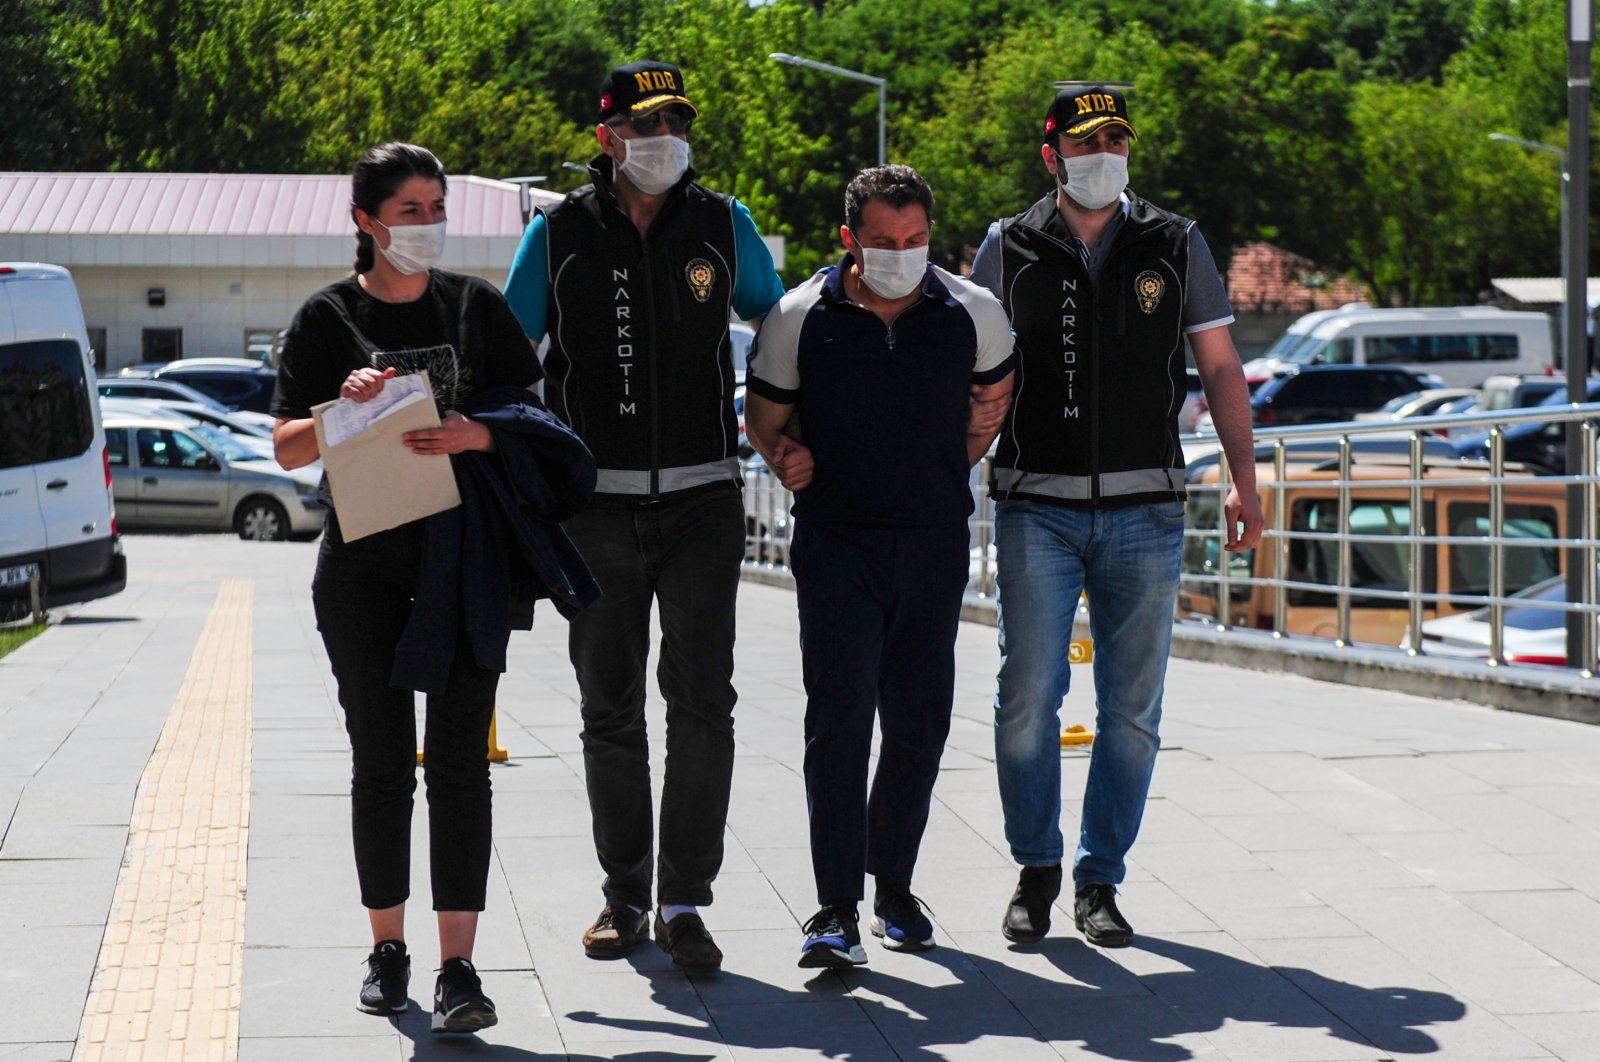 Police officers escort Nejat Daş, one of the suspects, to the police headquarters, in Ankara, Turkey, June 30, 2020. (İHA Photo)